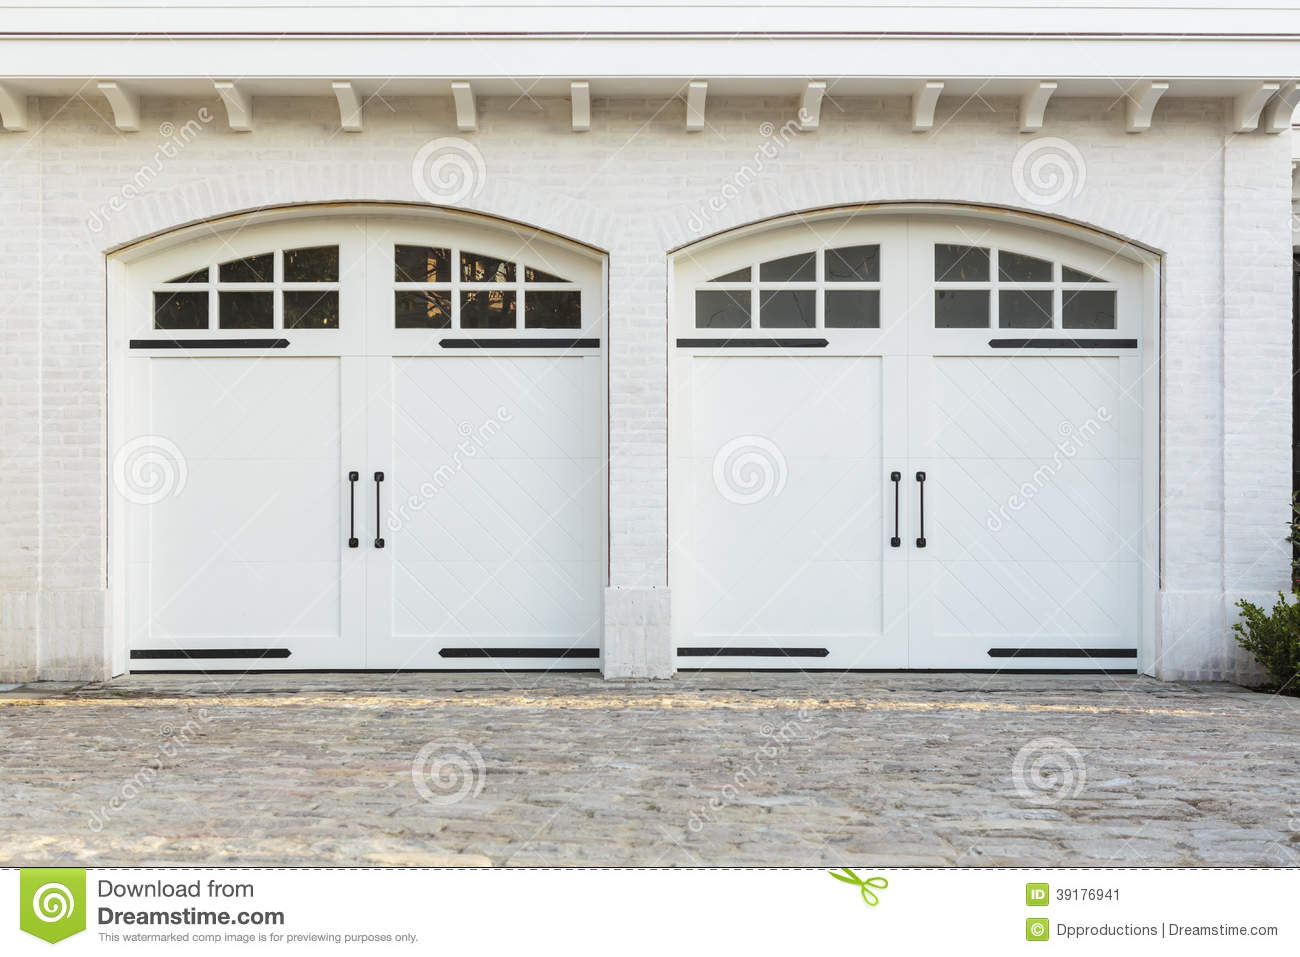 957 #82A328 Double Swinging Garage Doors To A White Brick Family Home. The Doors  wallpaper Double Garage Doors With Windows 38451300